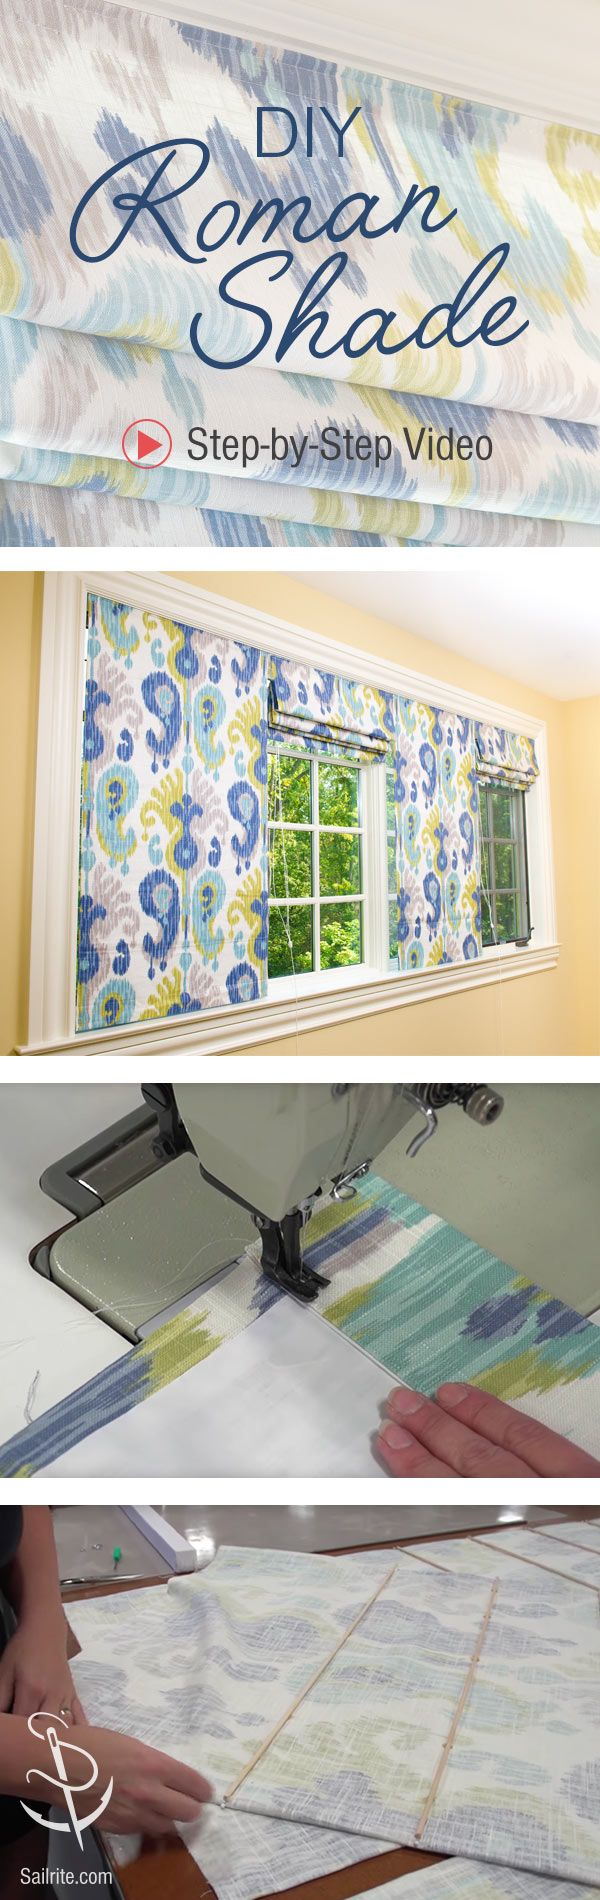 How To Make A Roman Shade Video Diy Roman Shades Diy